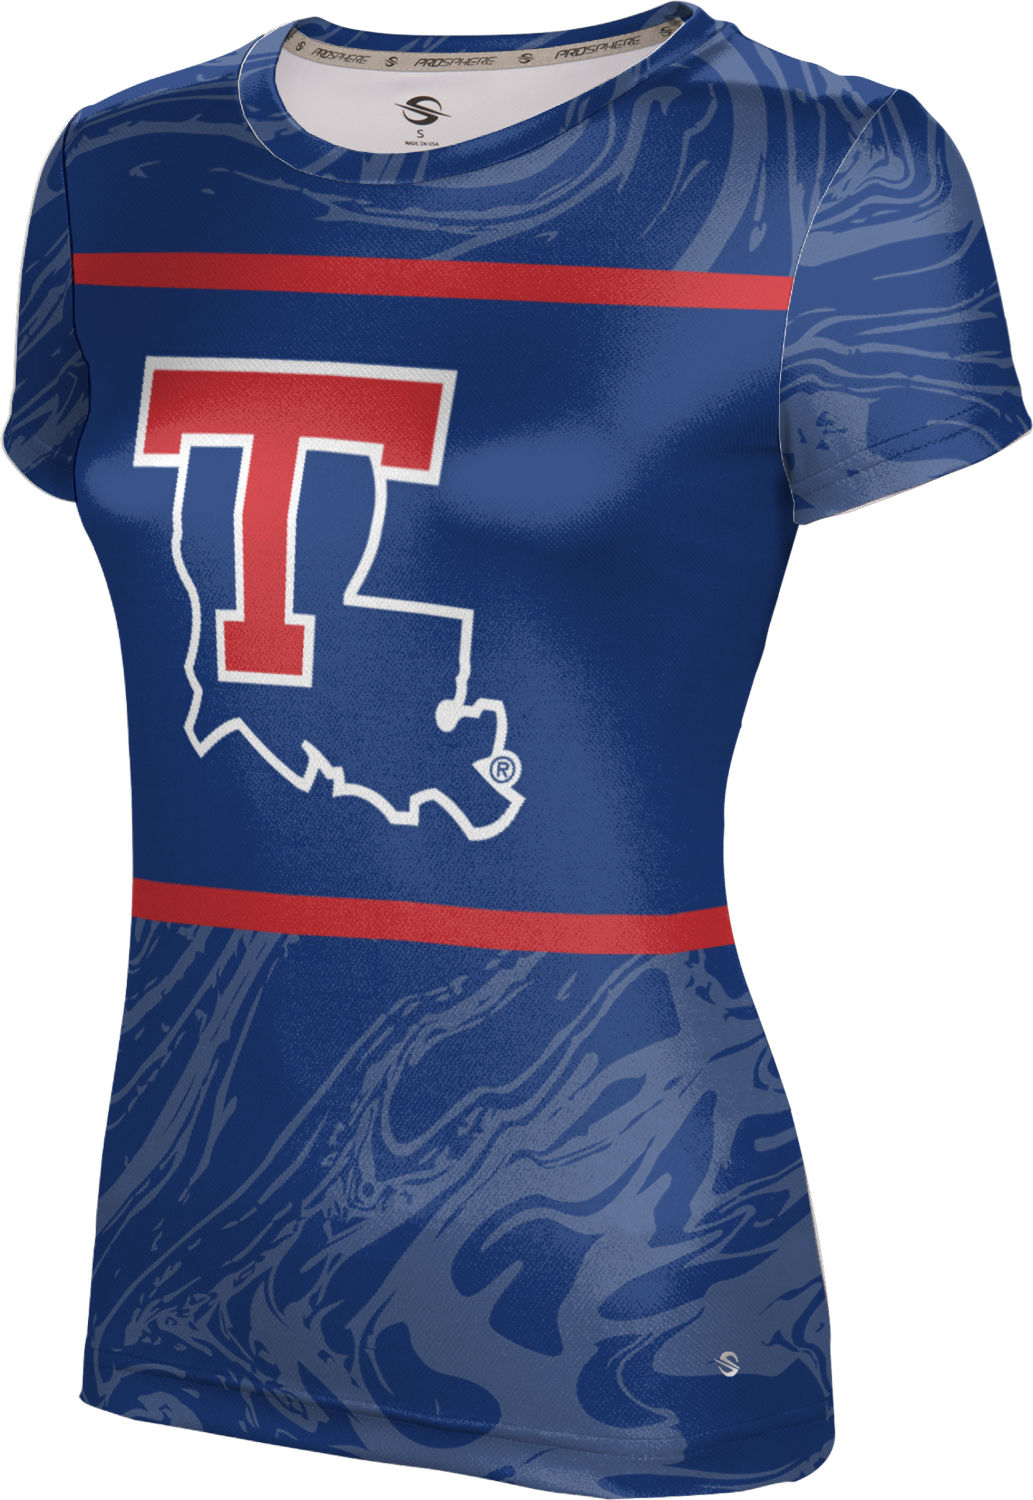 ProSphere Girls' Louisiana Tech University Ripple Tech Tee